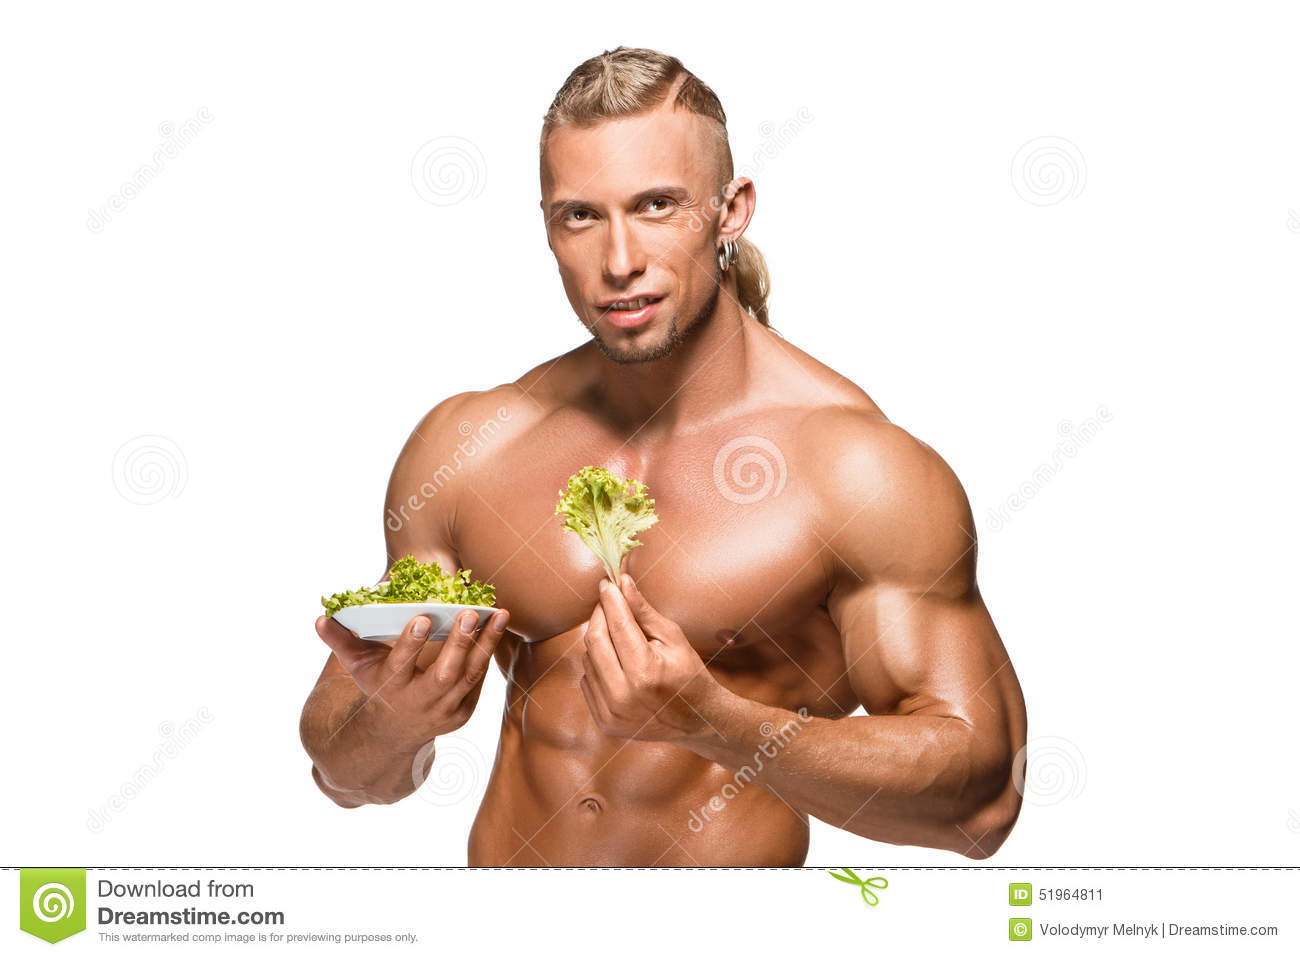 how to get healthy body for man